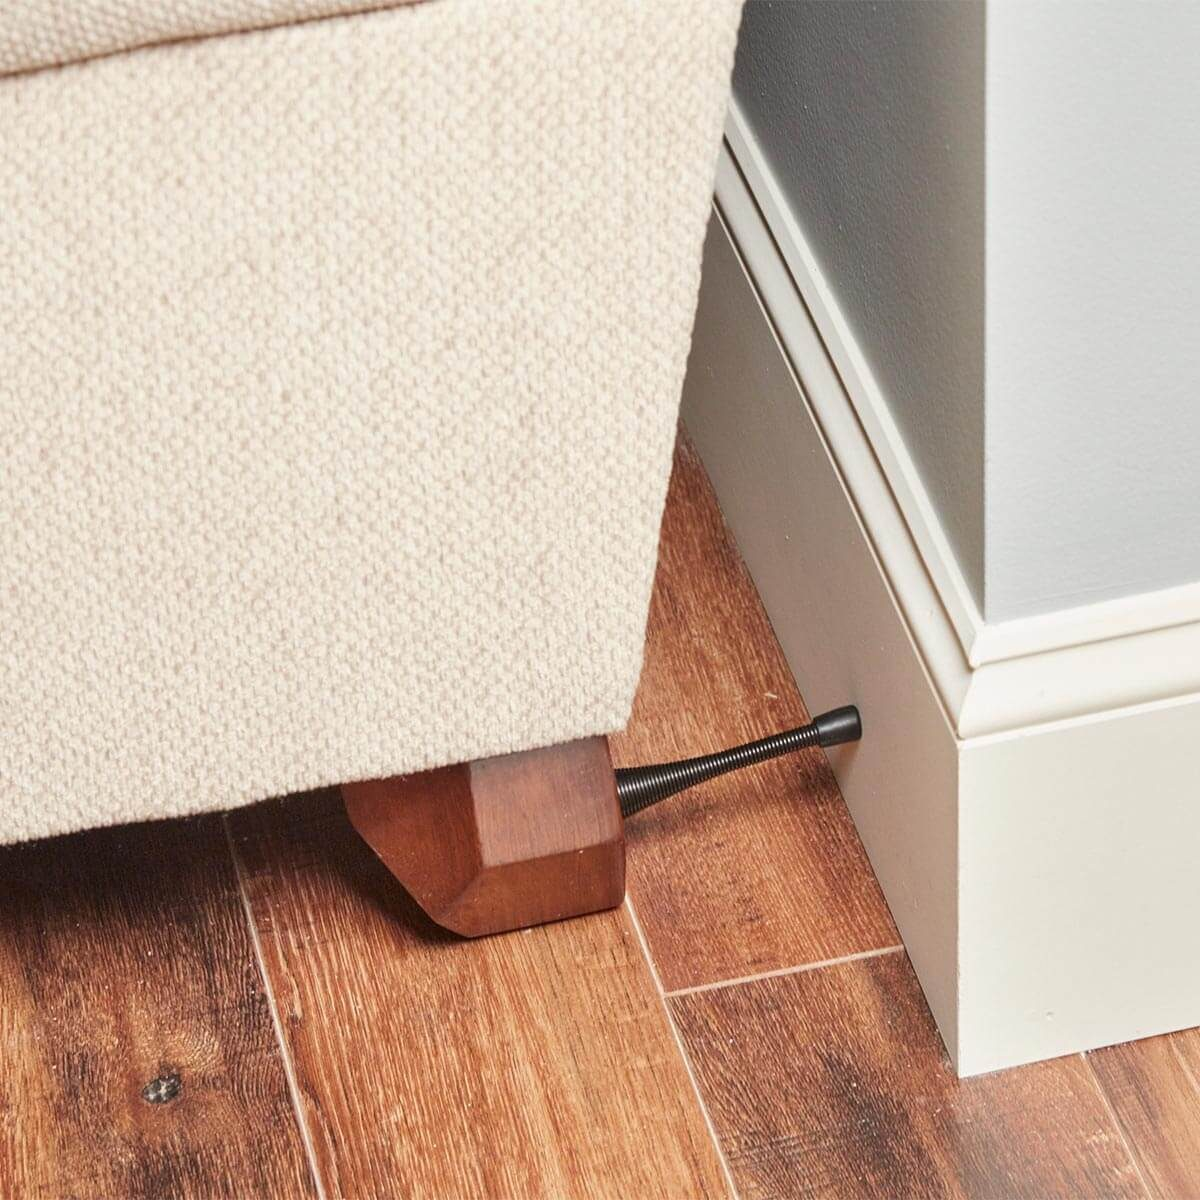 Sofa Stops, doorstop for a couch